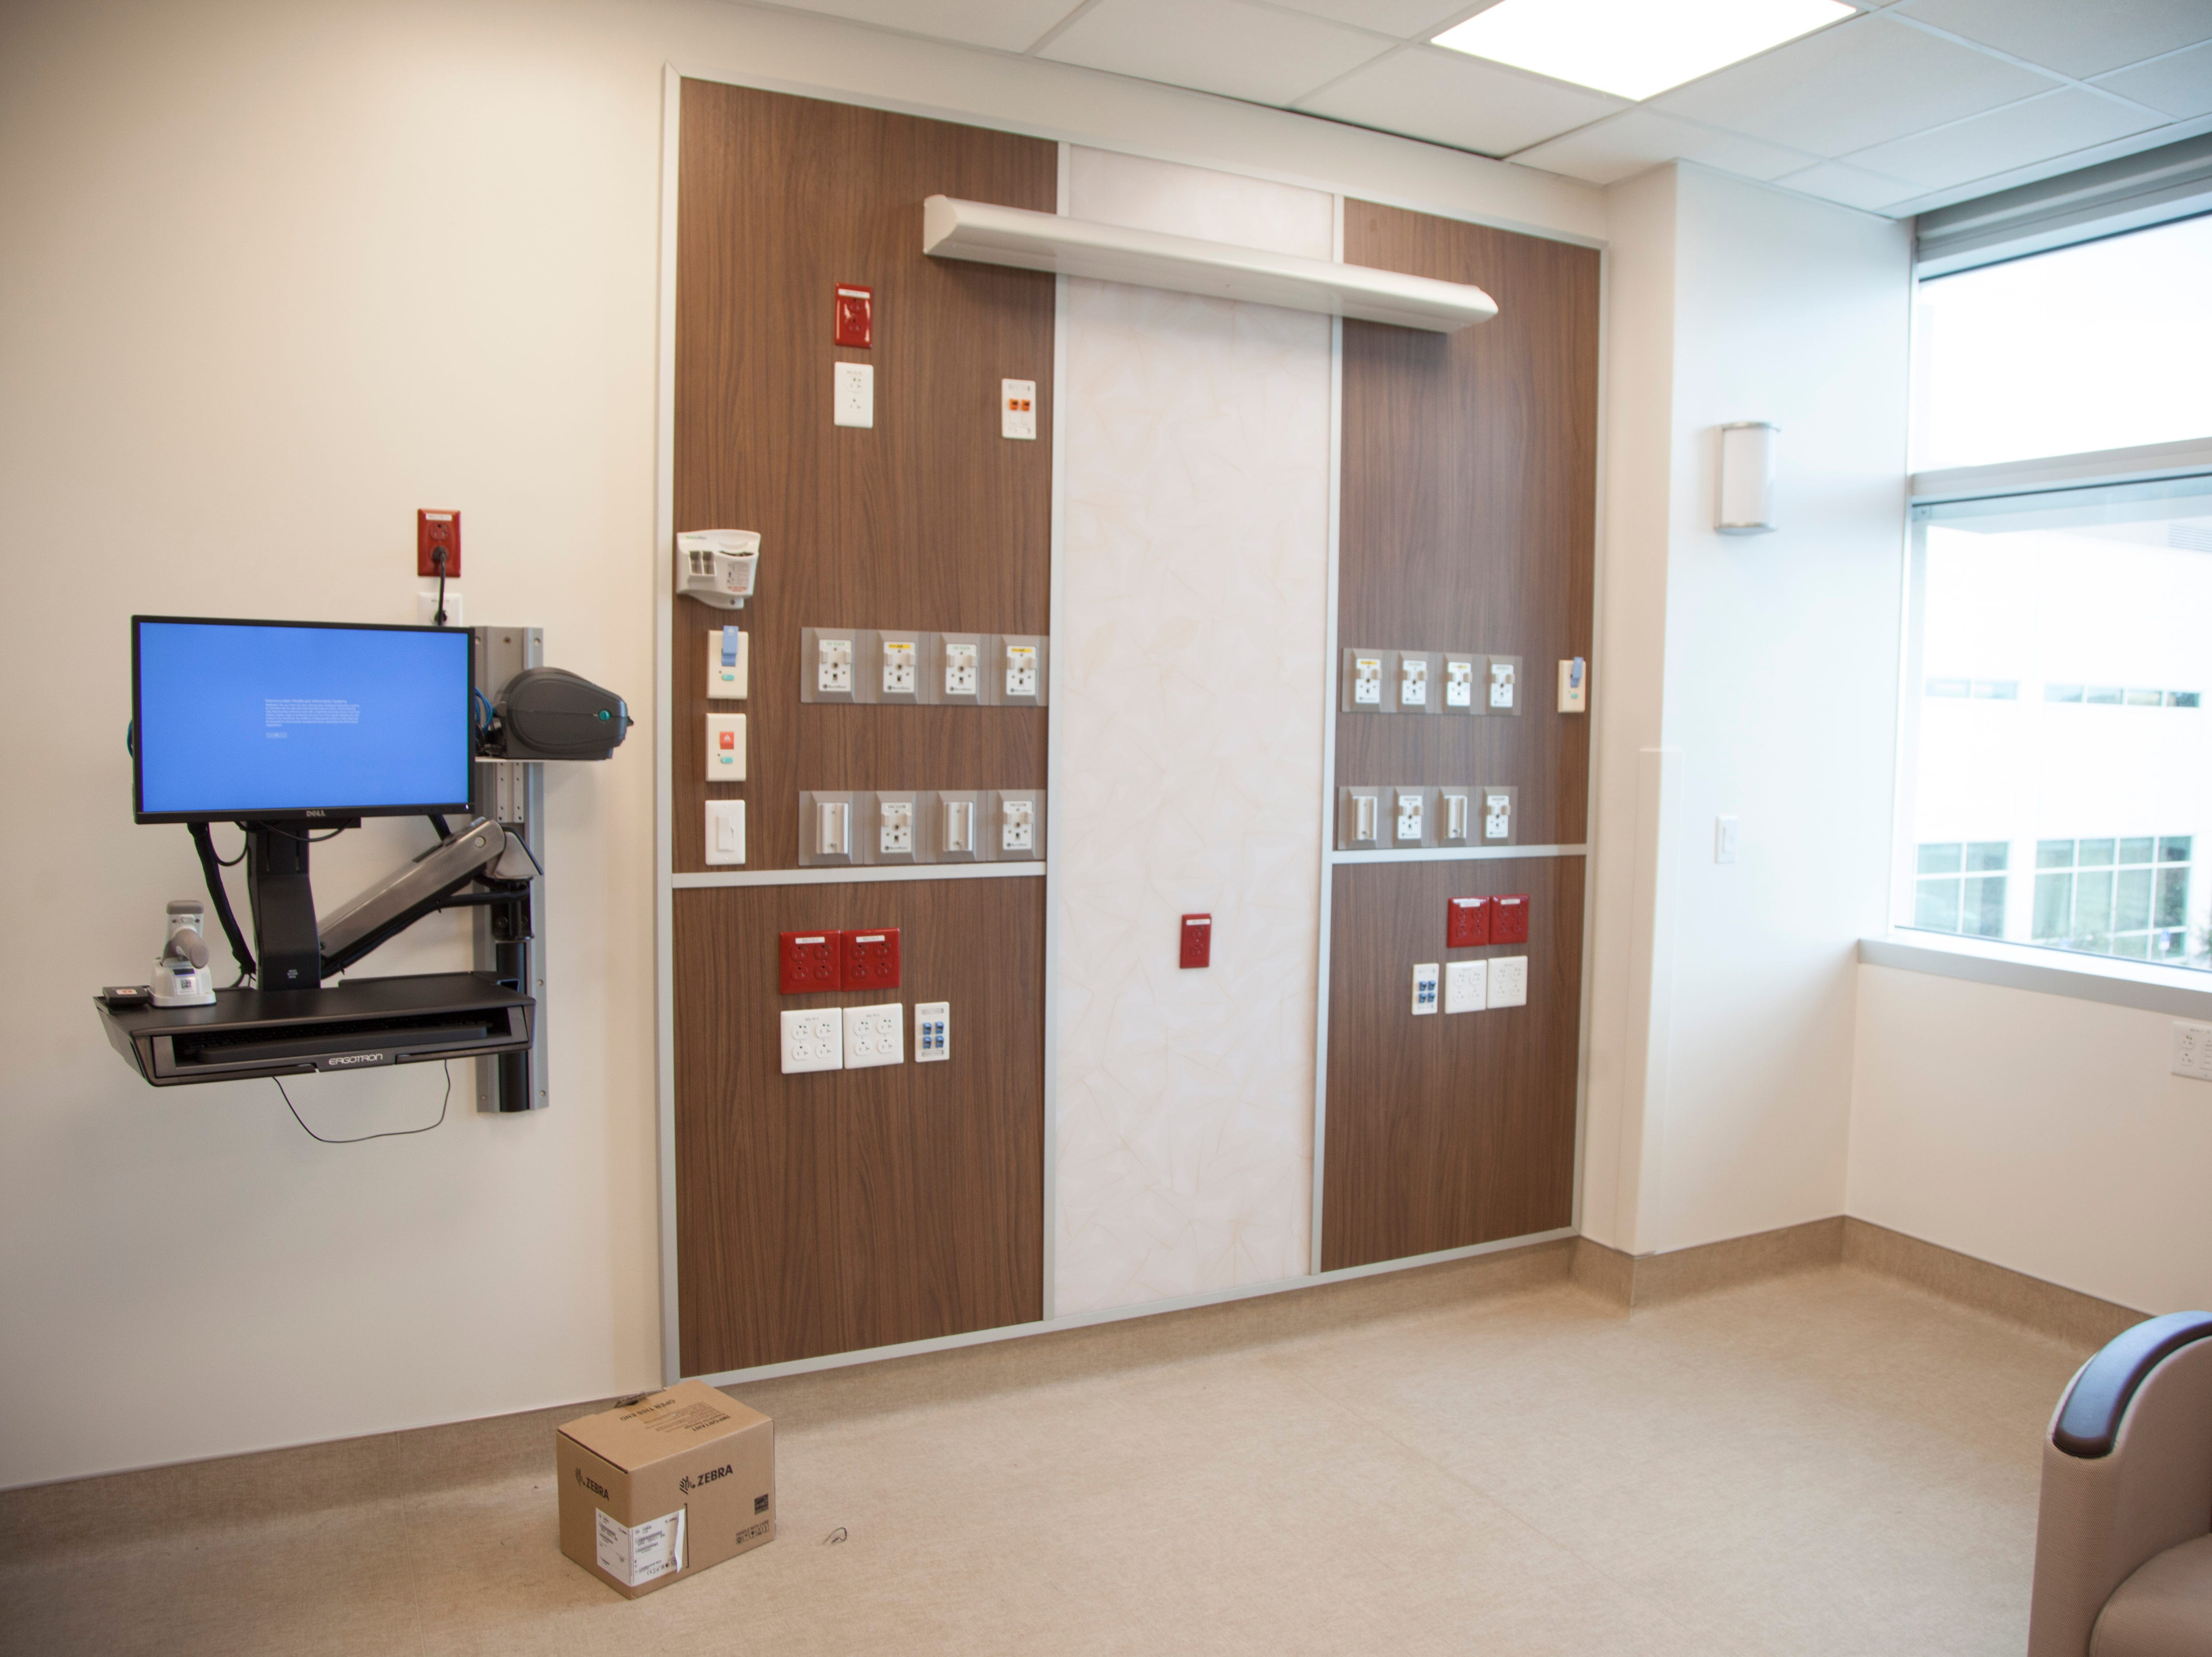 More rooms equipped with new technology have been added to Dixie Regional Medical Center to meet the growing demand for labor and delivery services in Southern Utah.